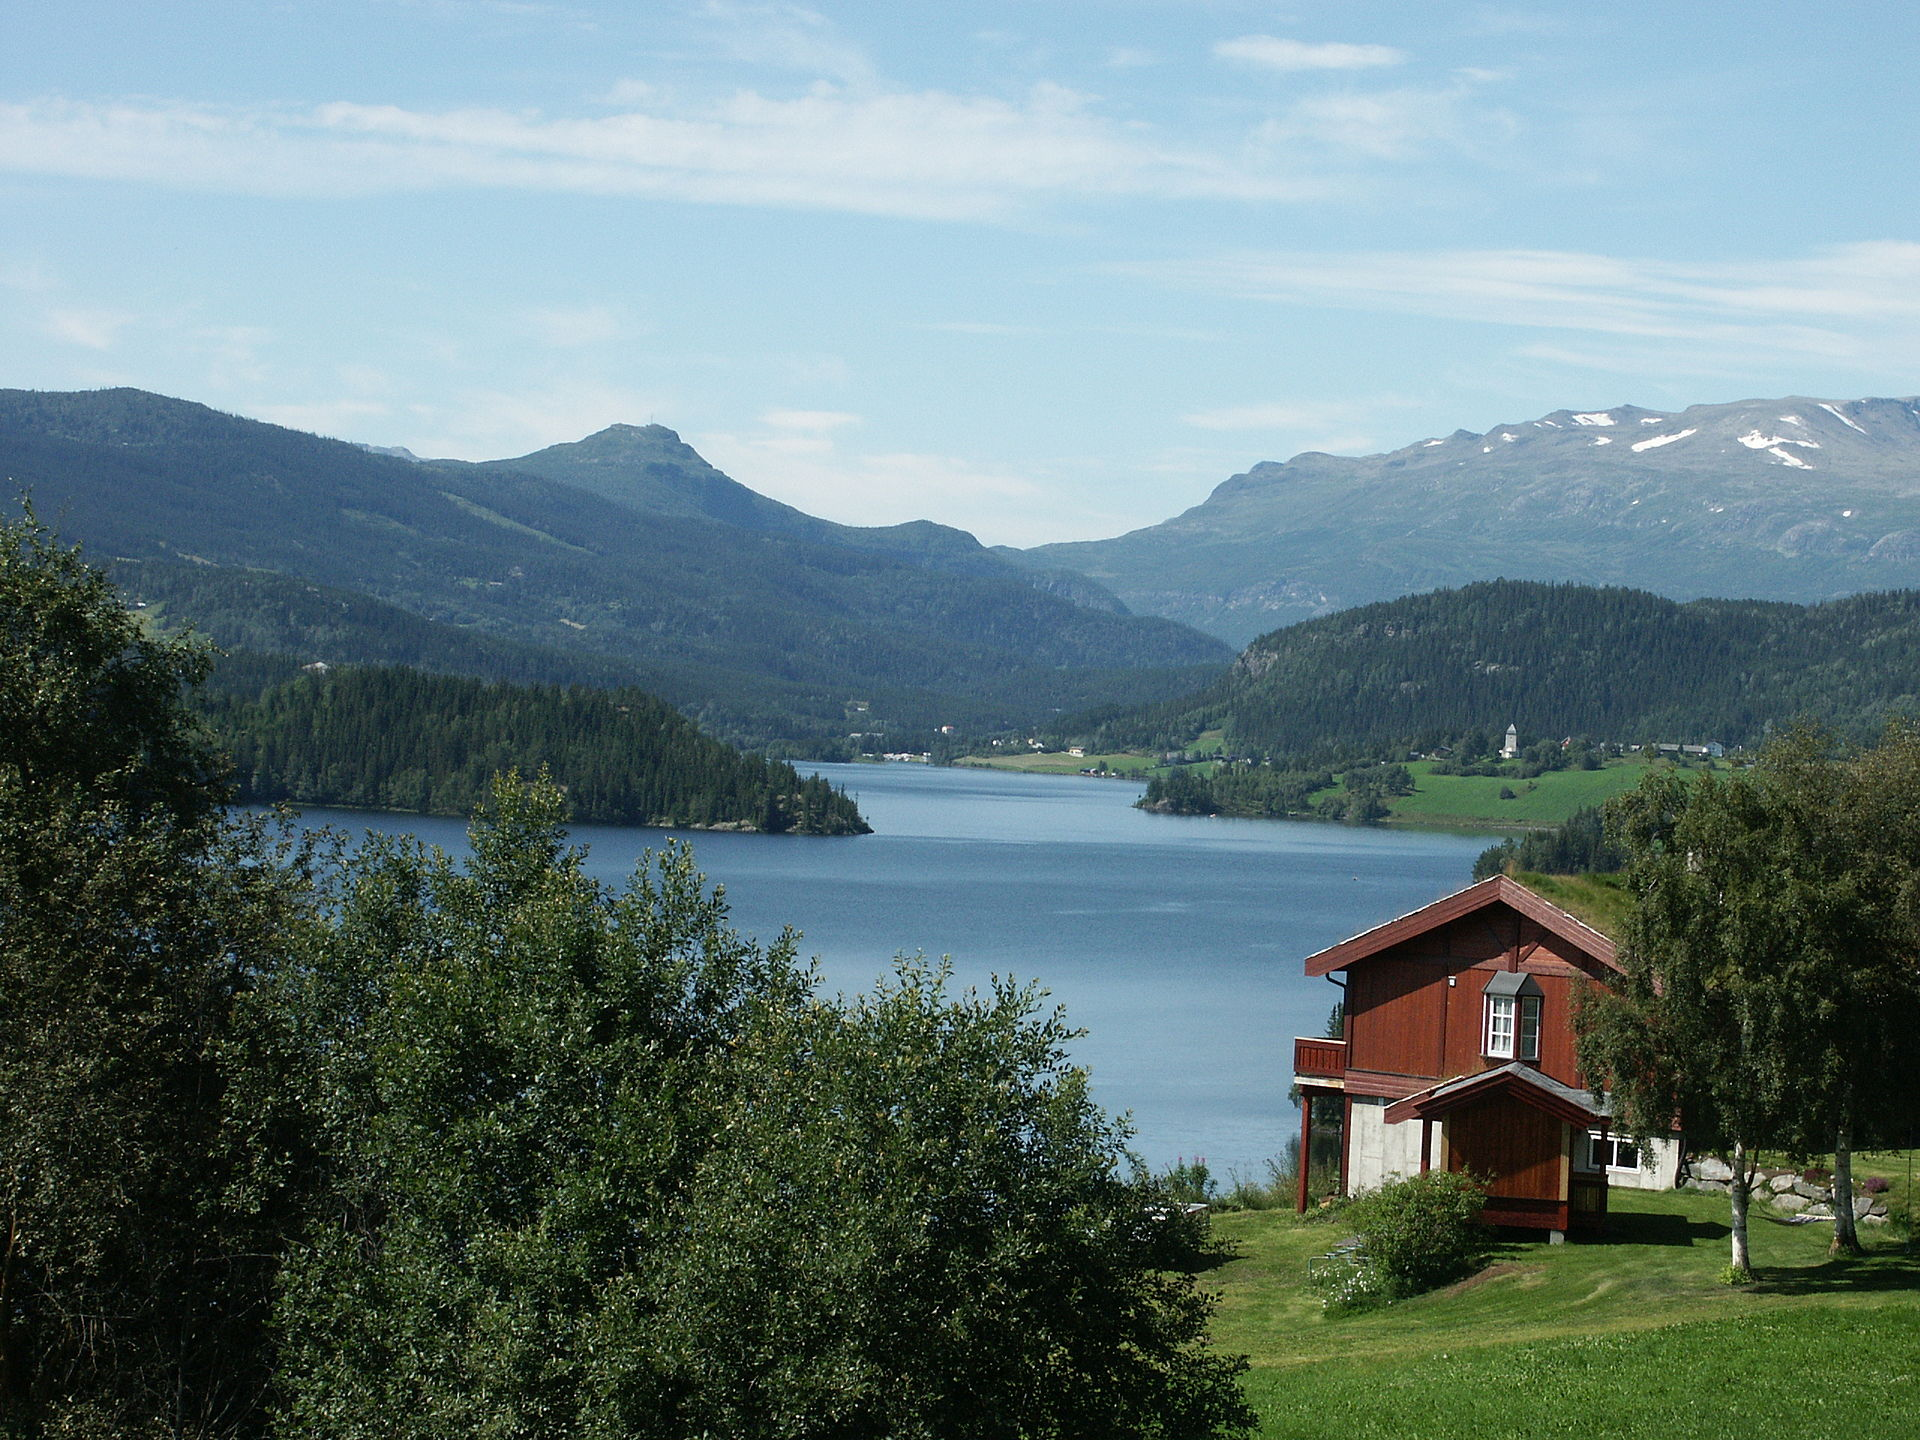 East Norway – Travel guide at Wikivoyage